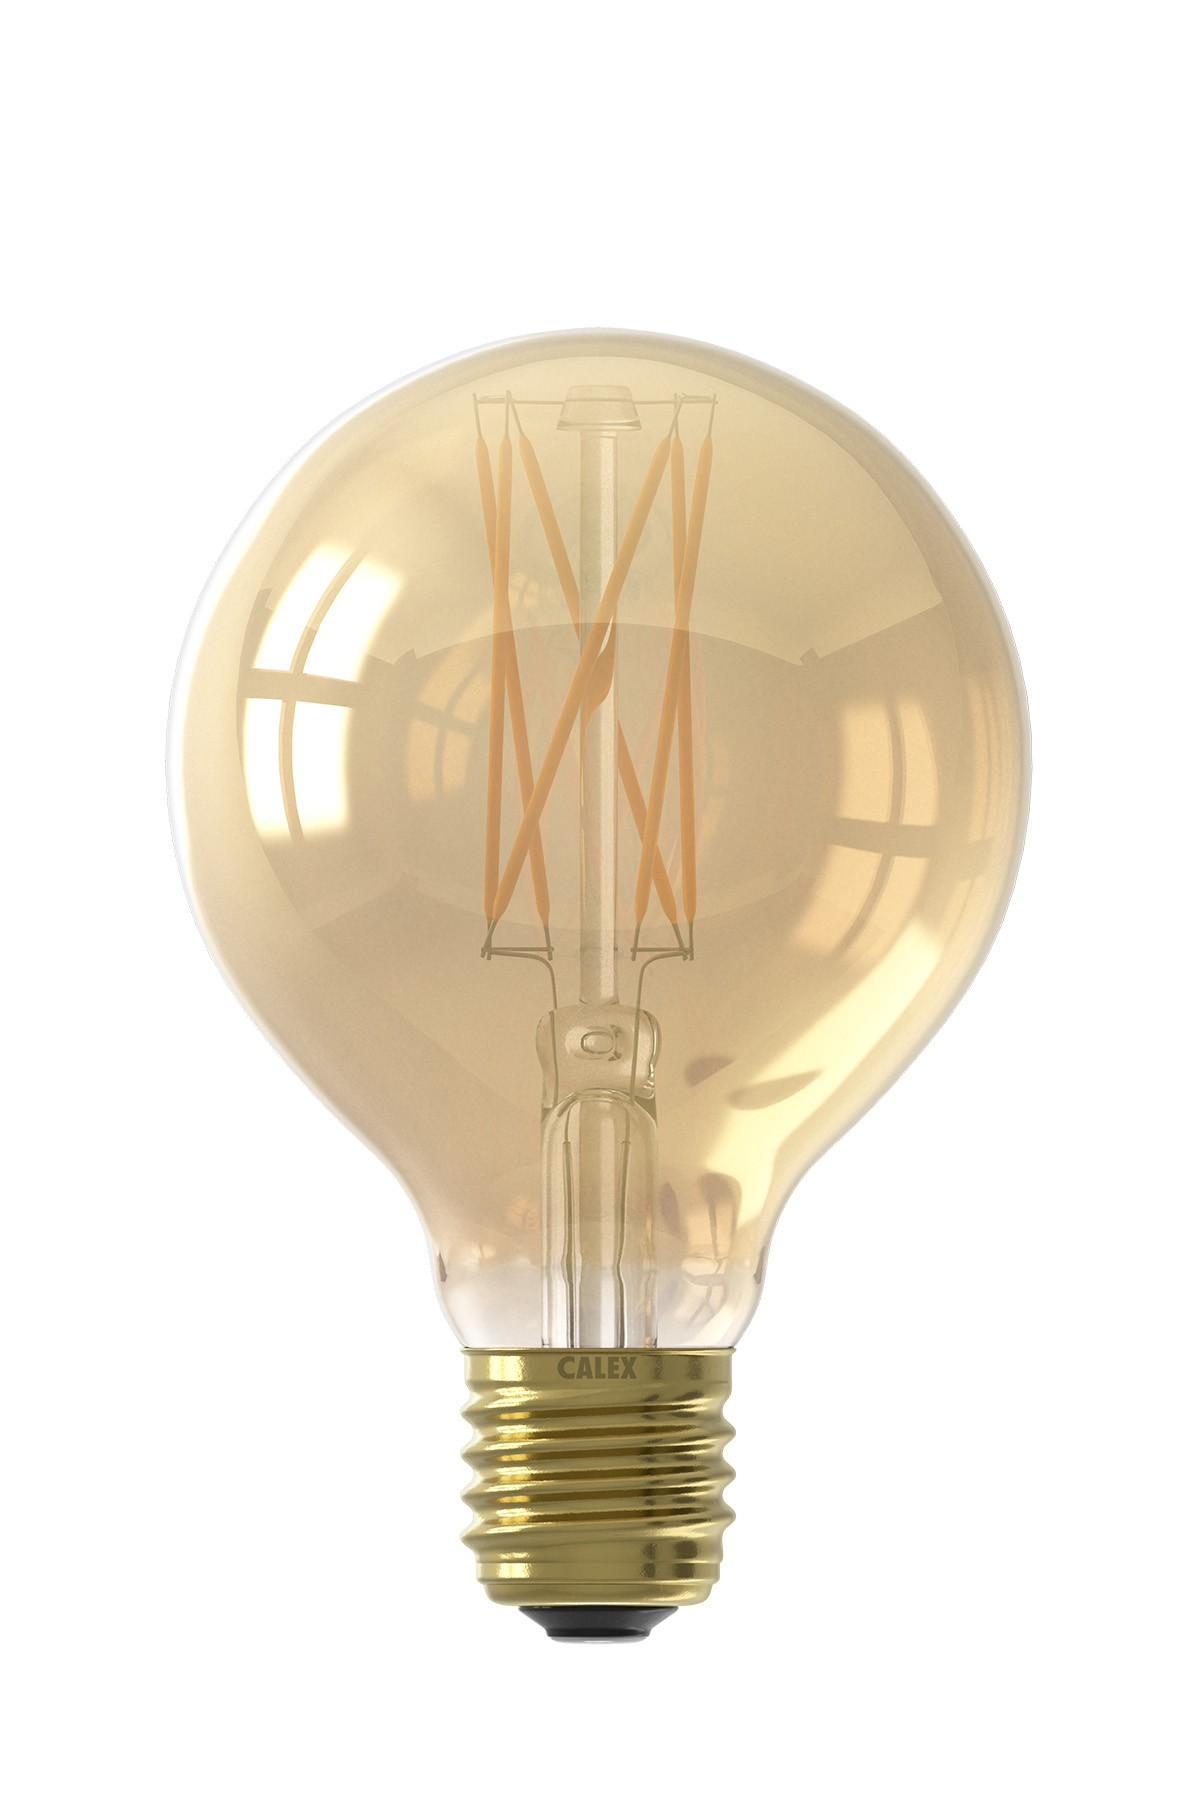 Calex Goldline Filament Led Dimmable Globe Lamps 240v 4 0w Calex